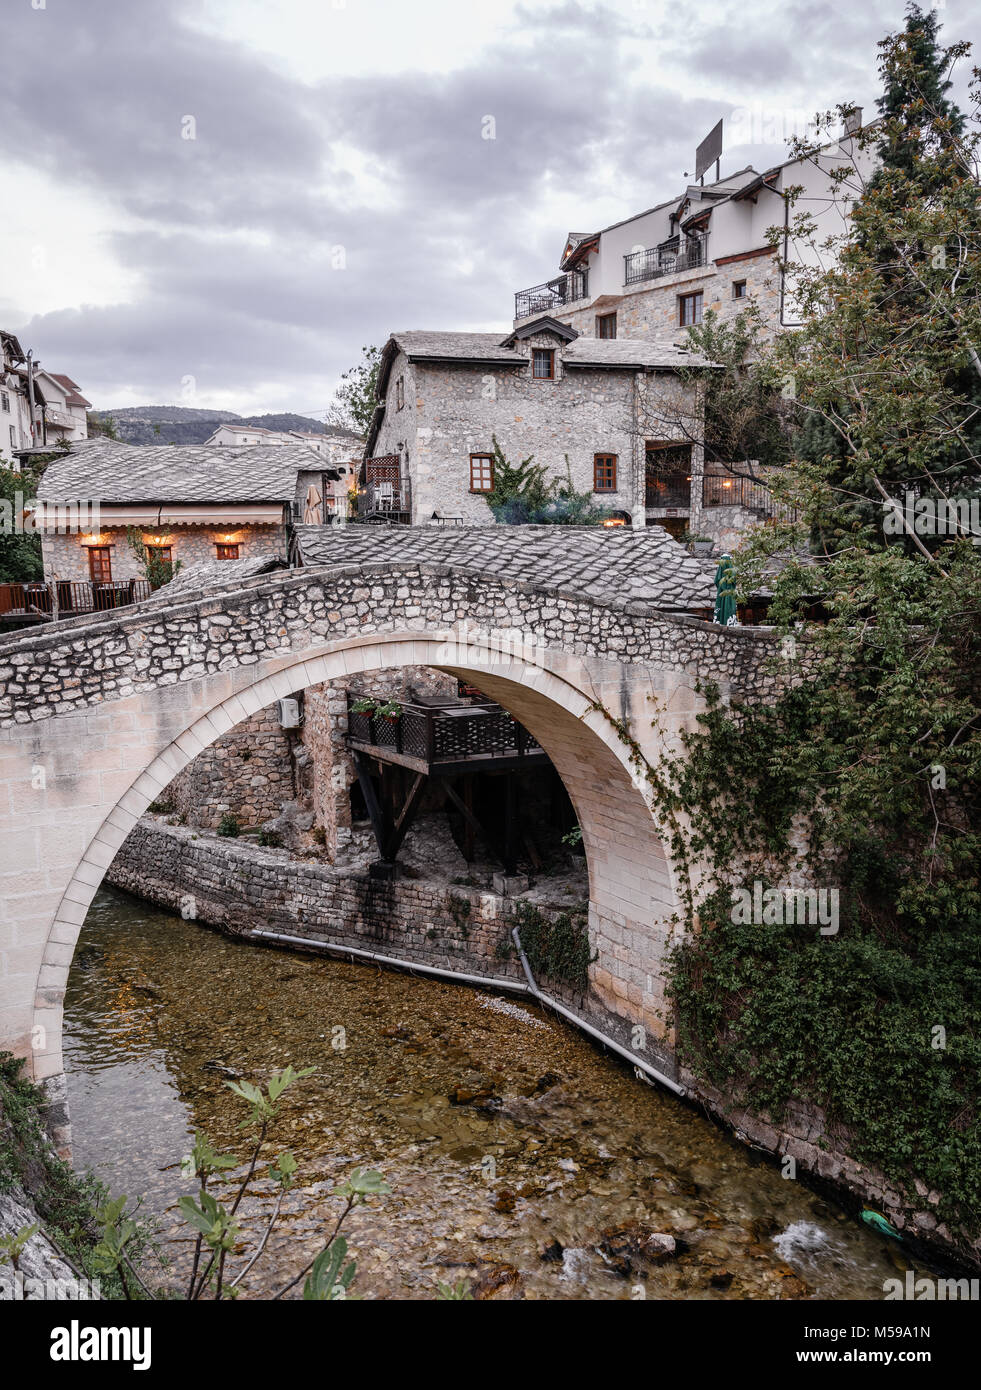 A foot bridge in the old part of Mostar in Bosnia-Herzegovina - Stock Image